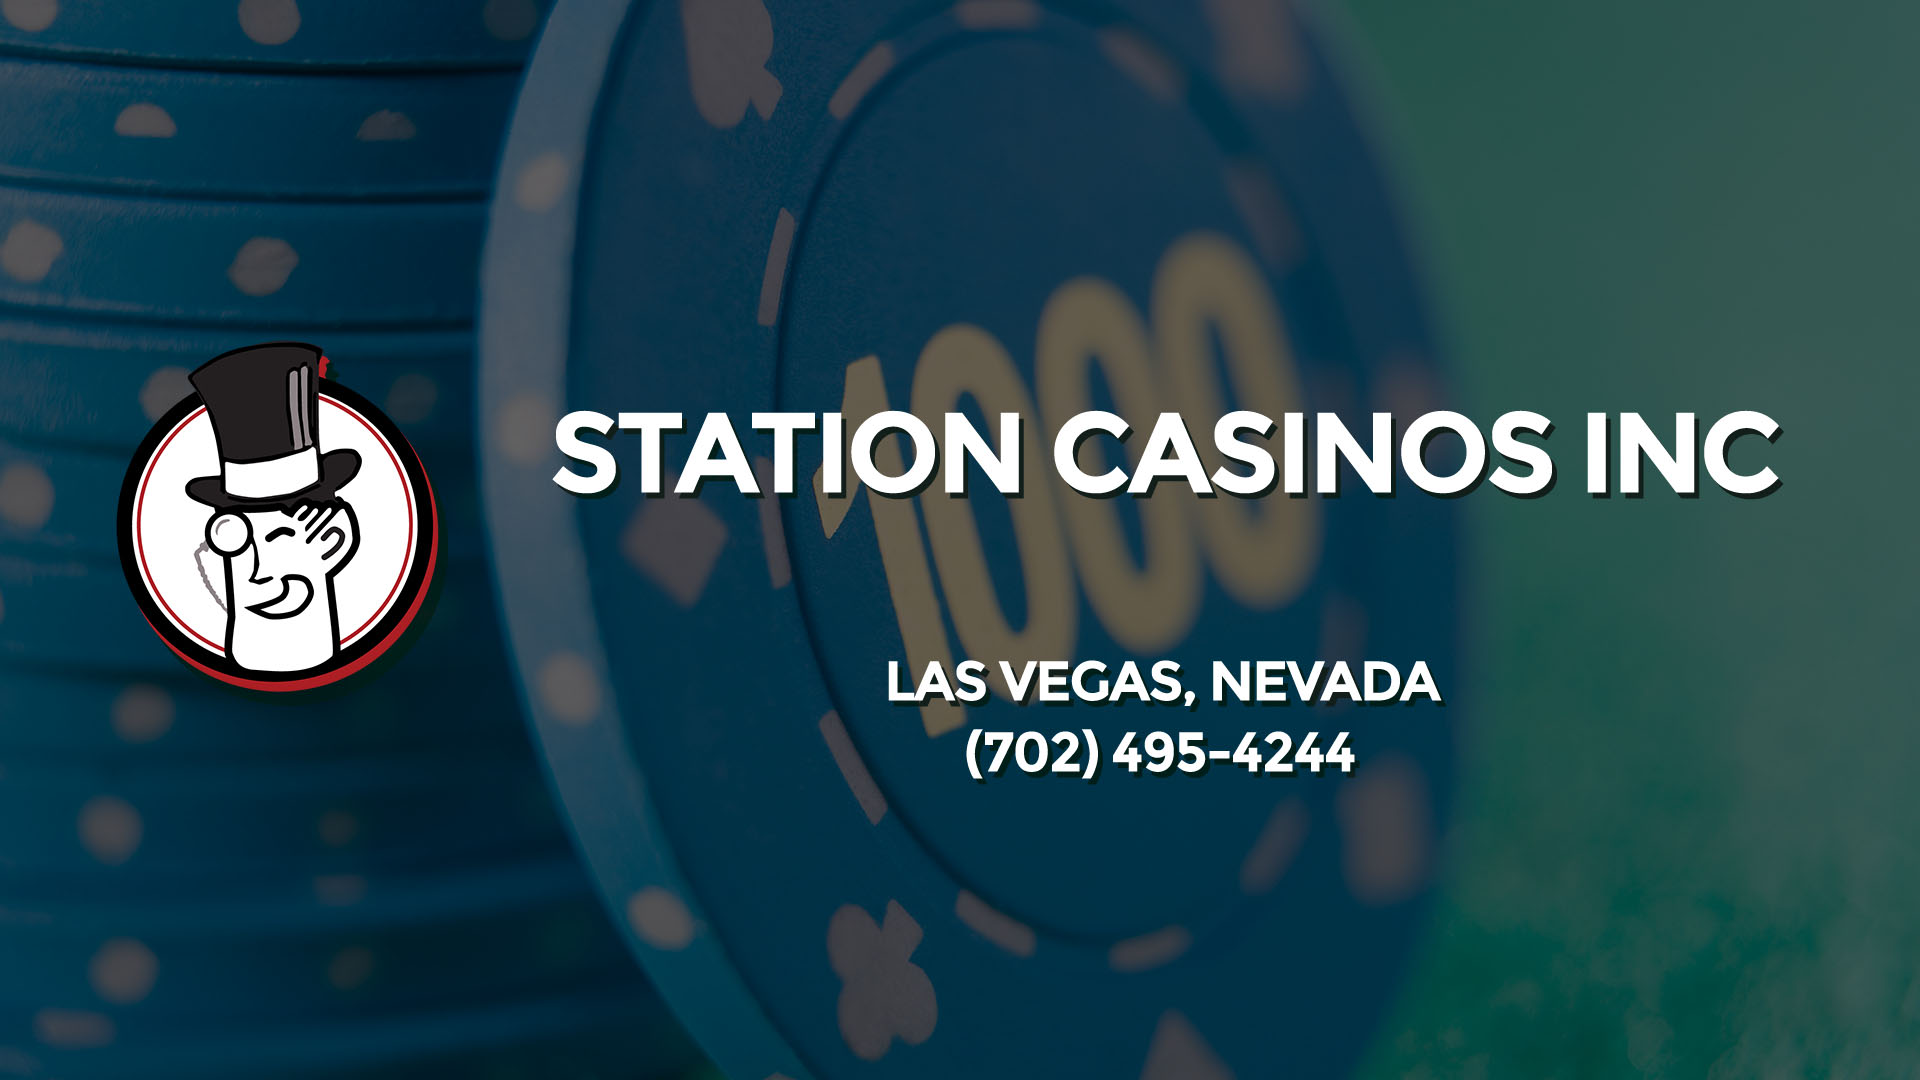 STATION CASINOS INC LAS VEGAS NV